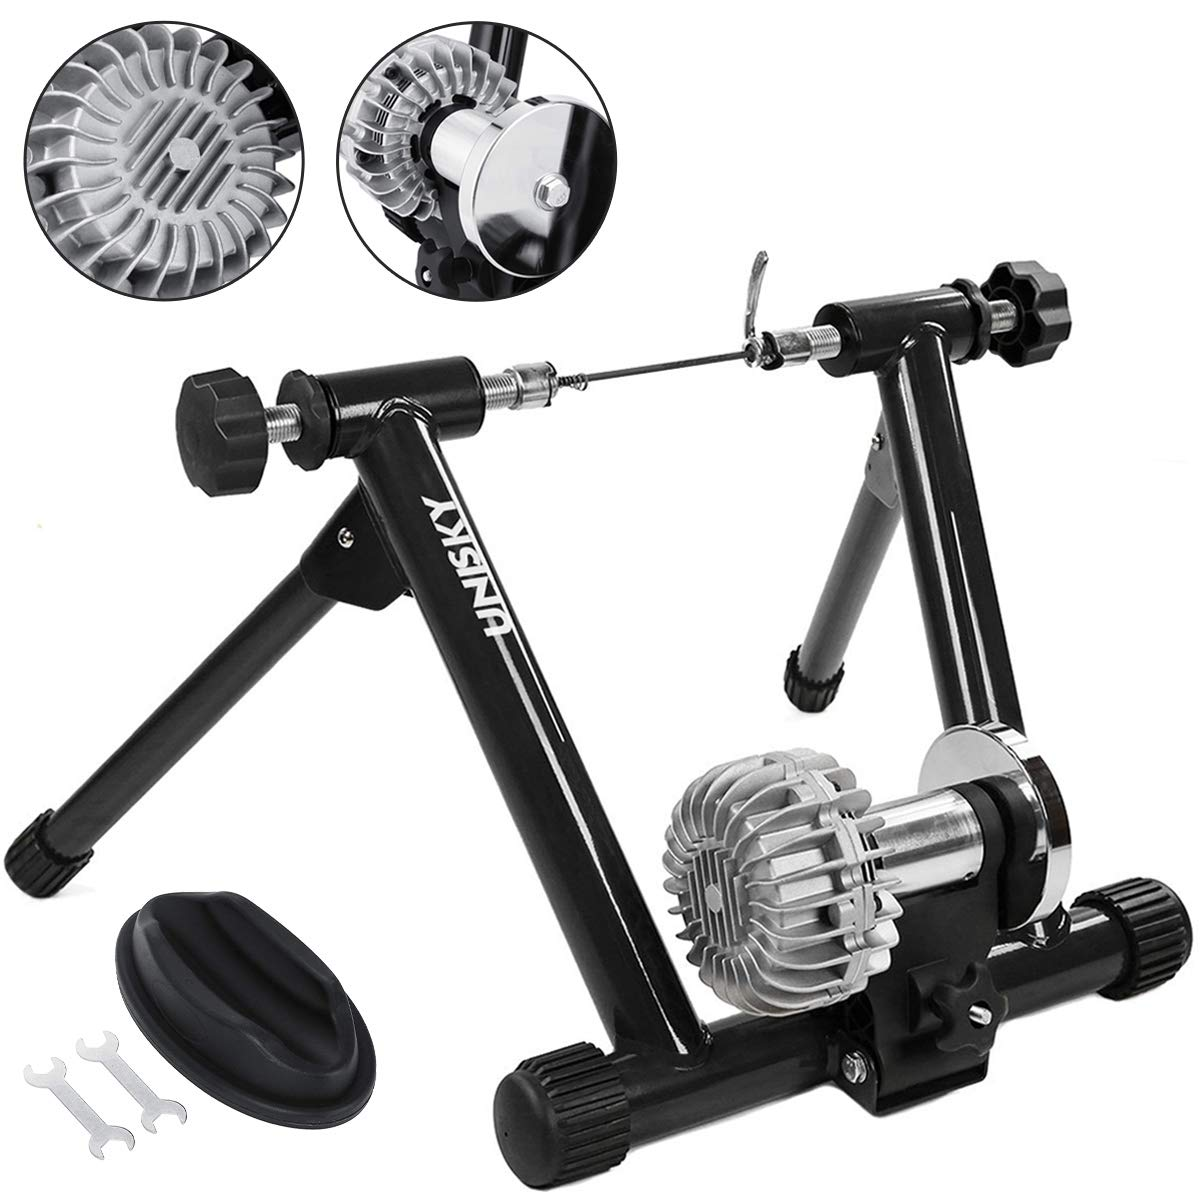 Fluid Bike Trainer >> Popsport Fluid Bike Trainer Stand 330lbs Indoor Bicycle Trainer 750w Flowing Resistance Indoor Bike Trainer Exercise Stand For Indoor Riding Training